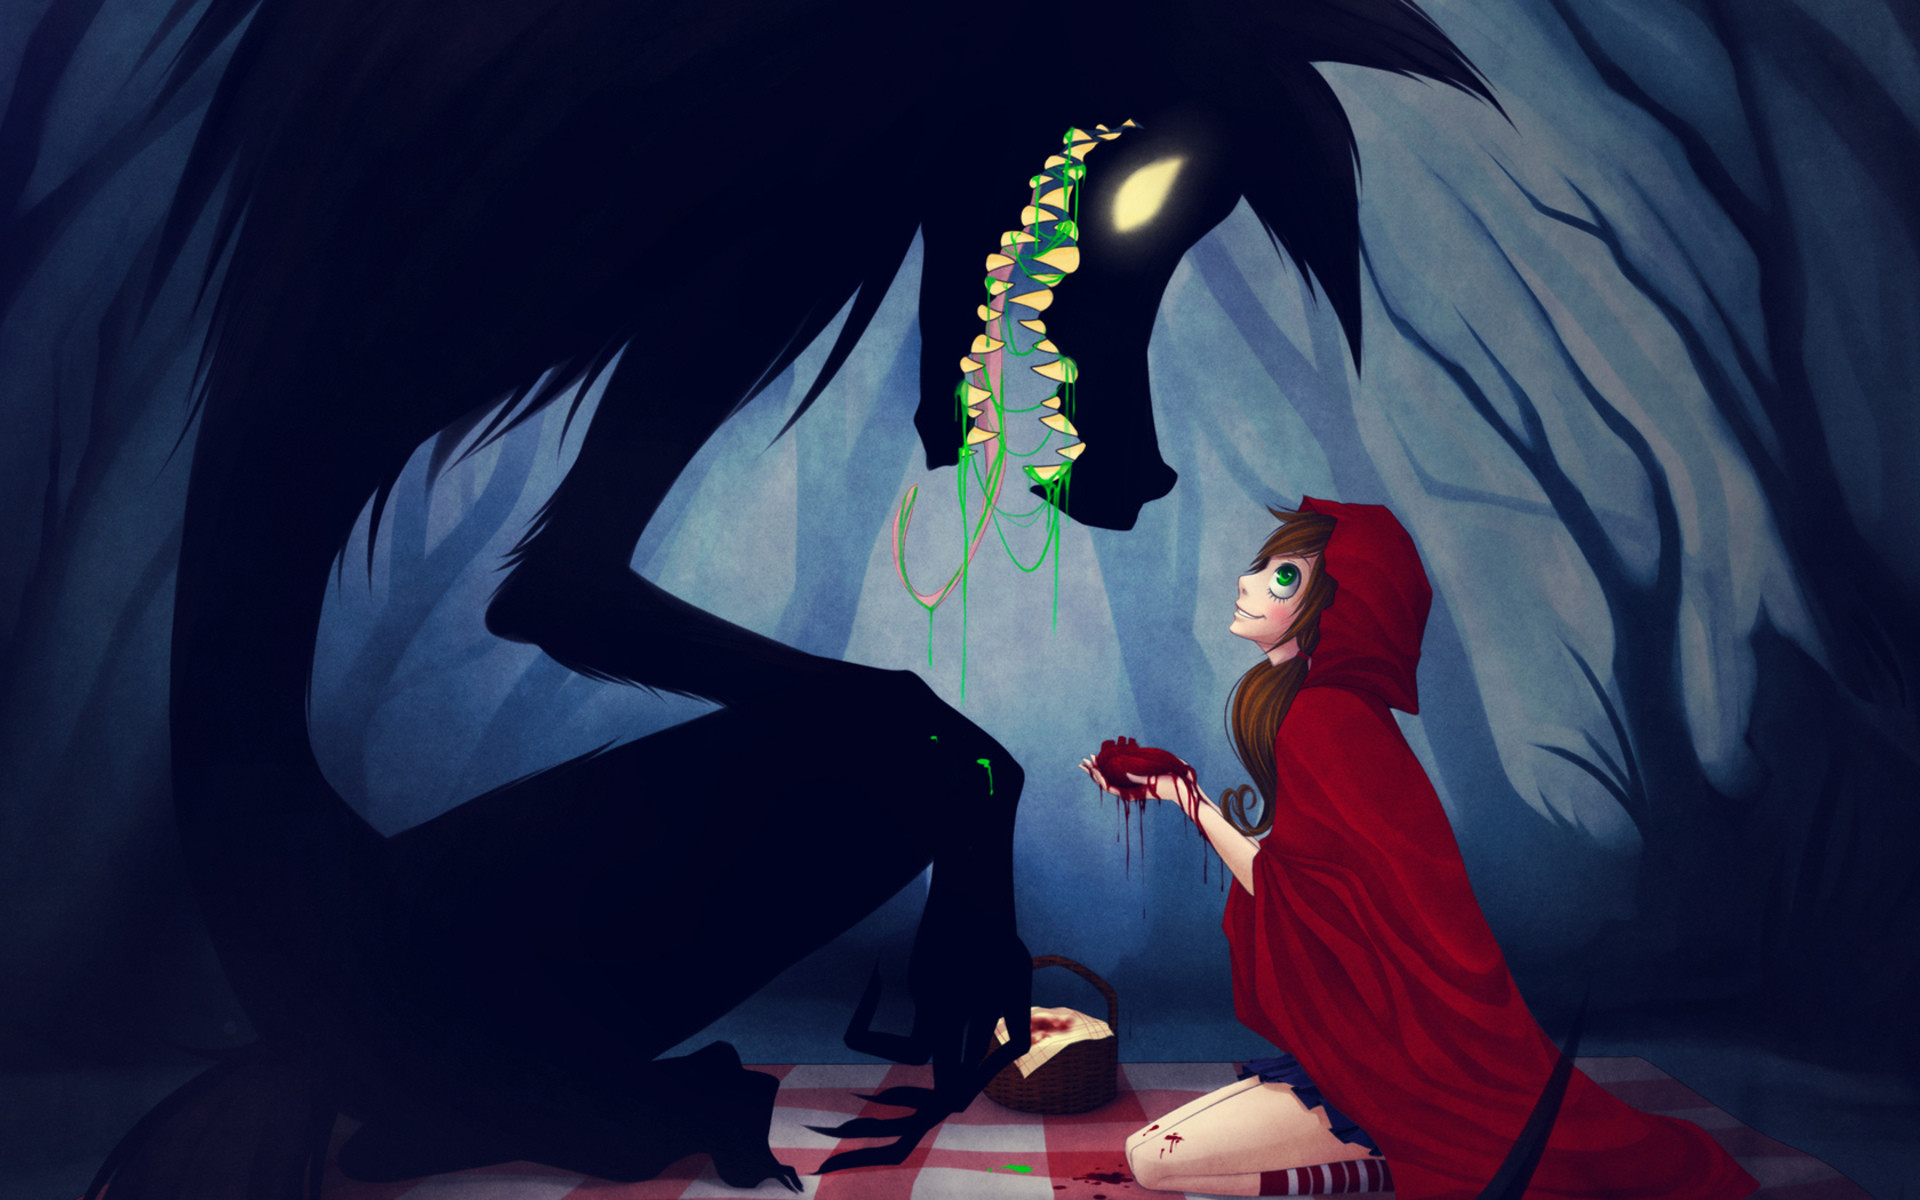 Red-Riding-Hood anime animals wolves trees forest women girls dark creepy  spooky fangs wallpaper | | 23904 | WallpaperUP